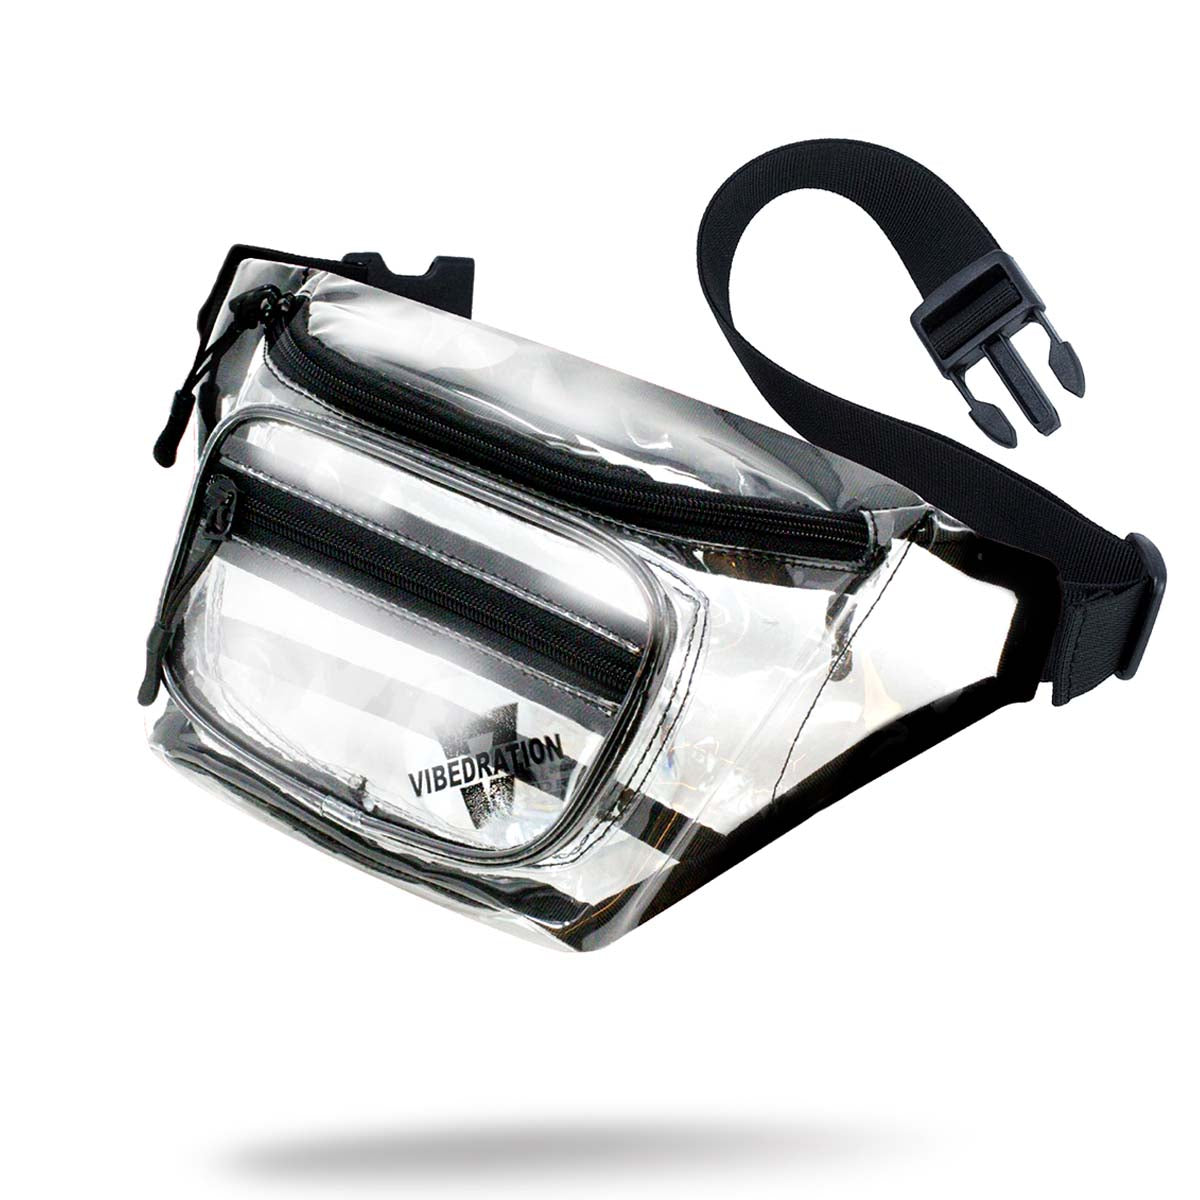 Crystal clear sling pack for music festivals